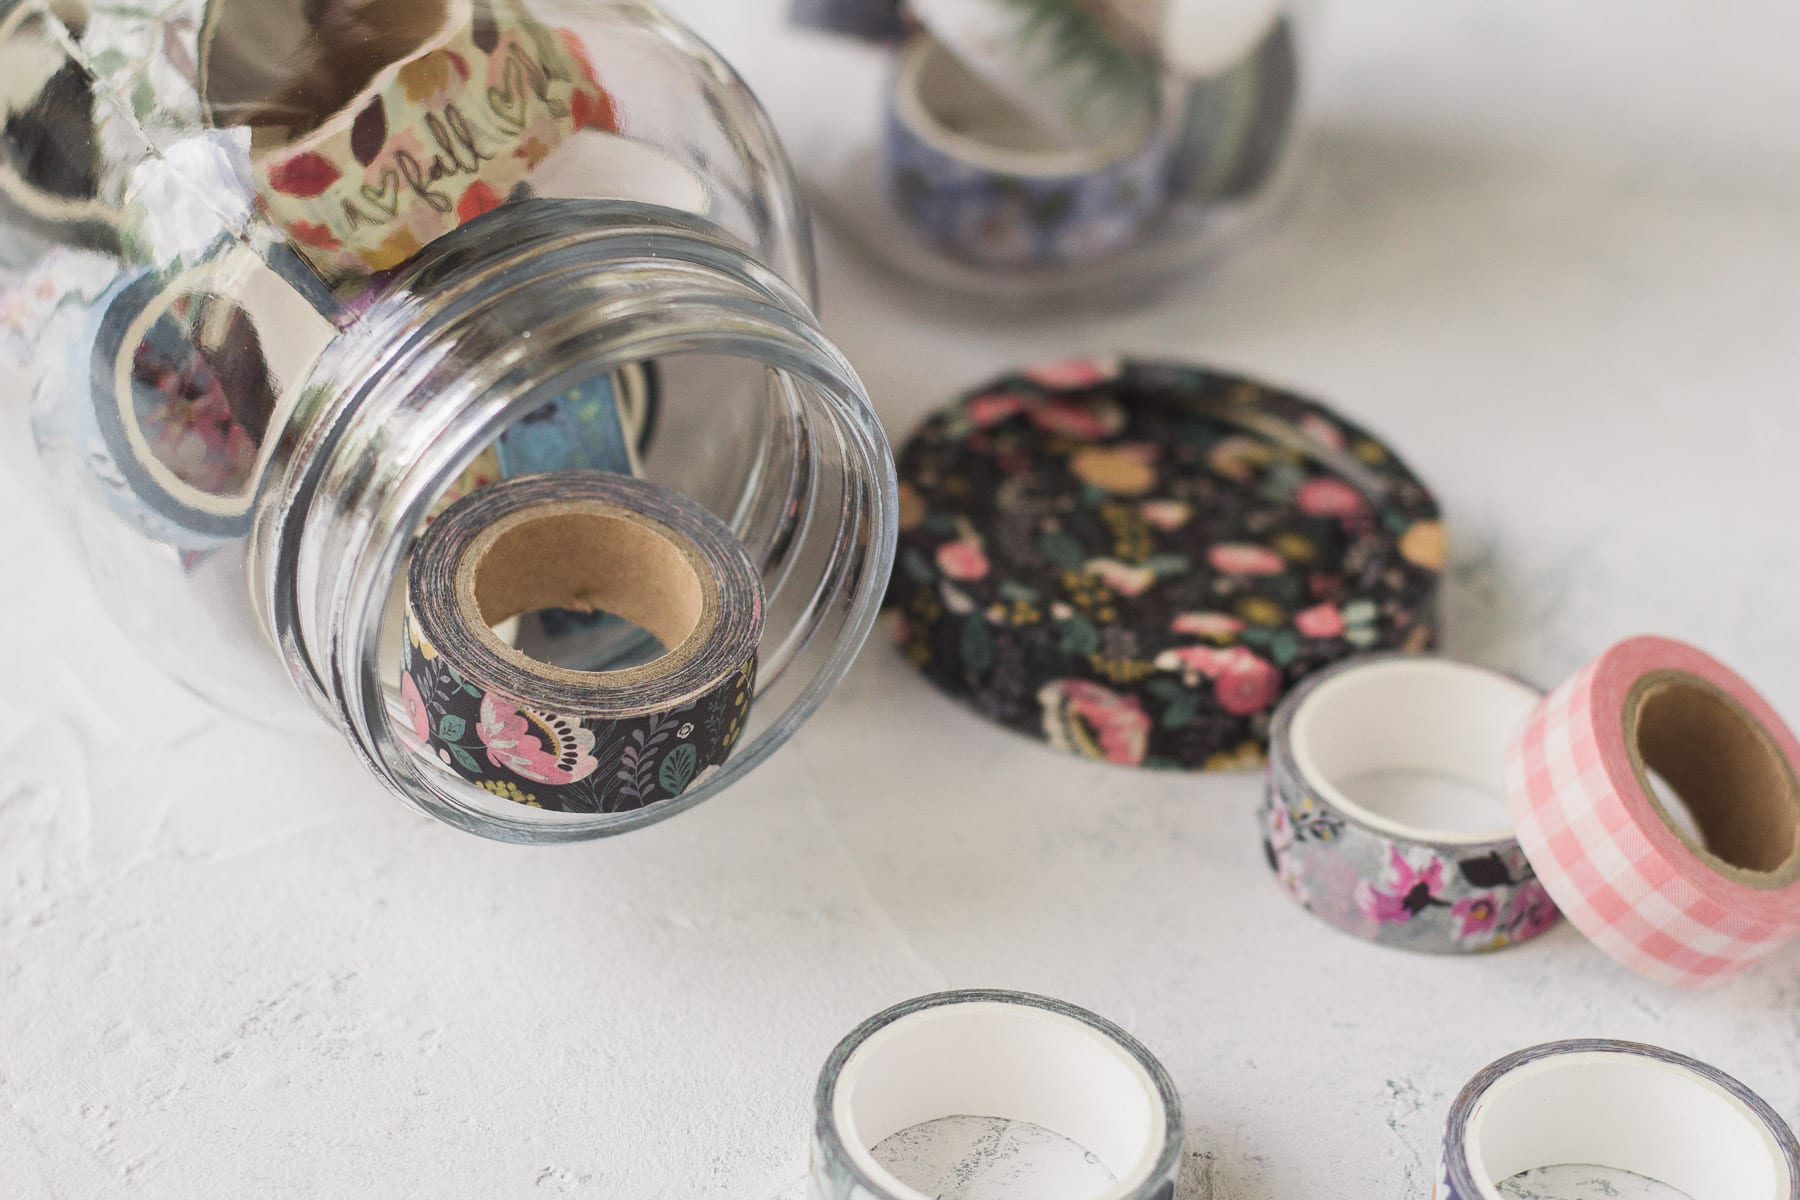 Washi tape in a mason jar with more spools surrounding.